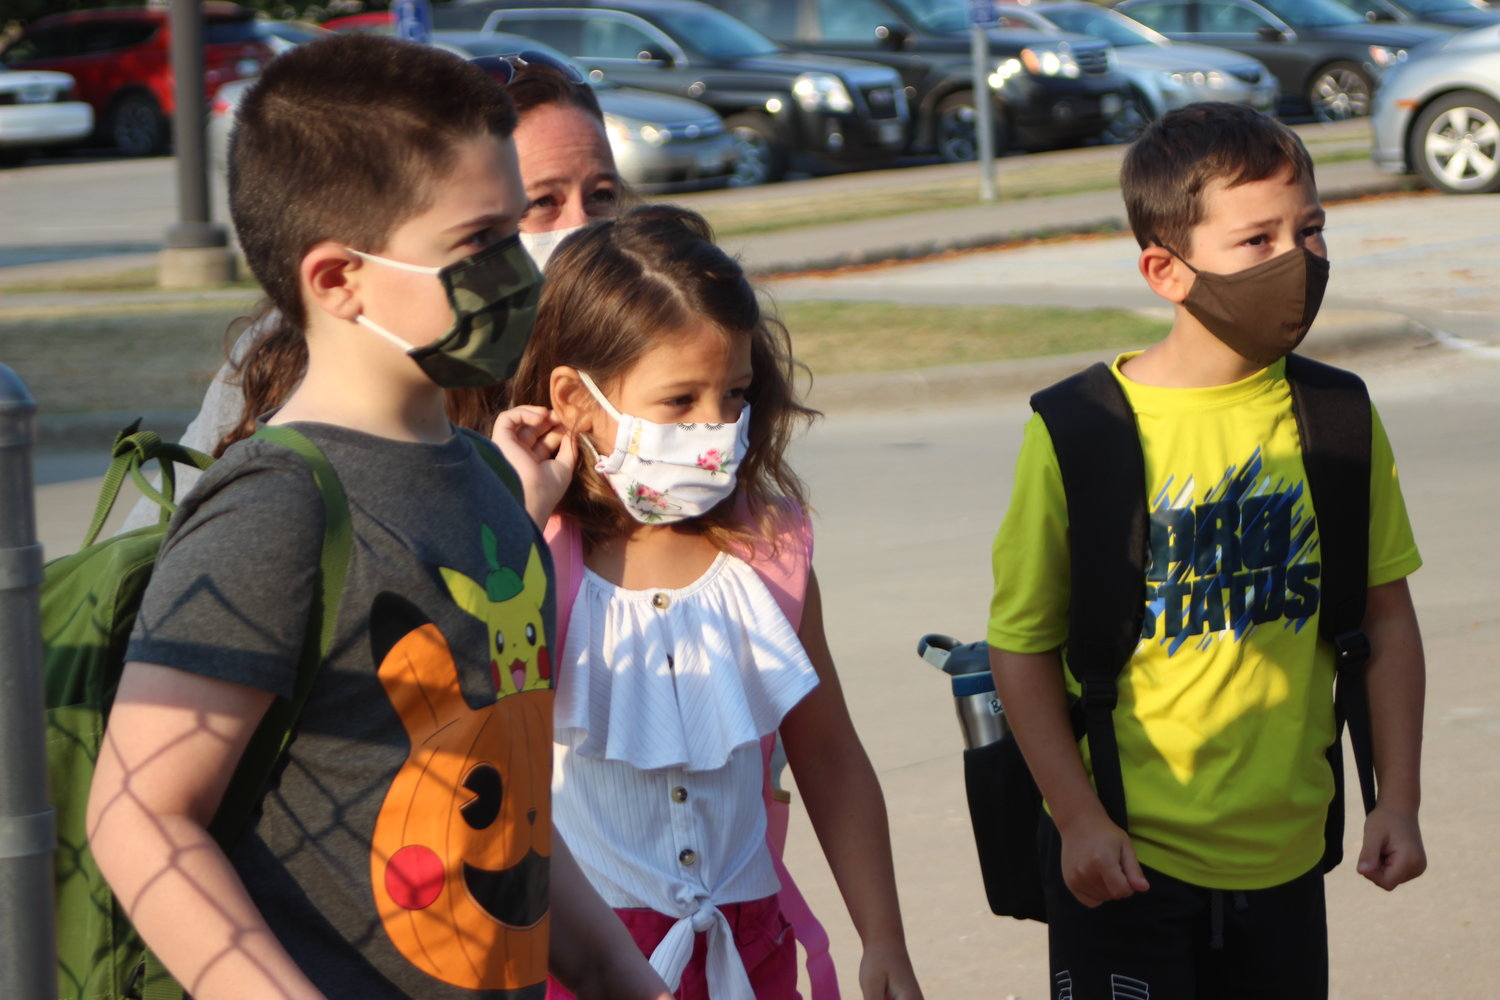 Bradley Kallaus, Saige Noel and Bailey Noel arrive for their first day of school at Highland Elementary.